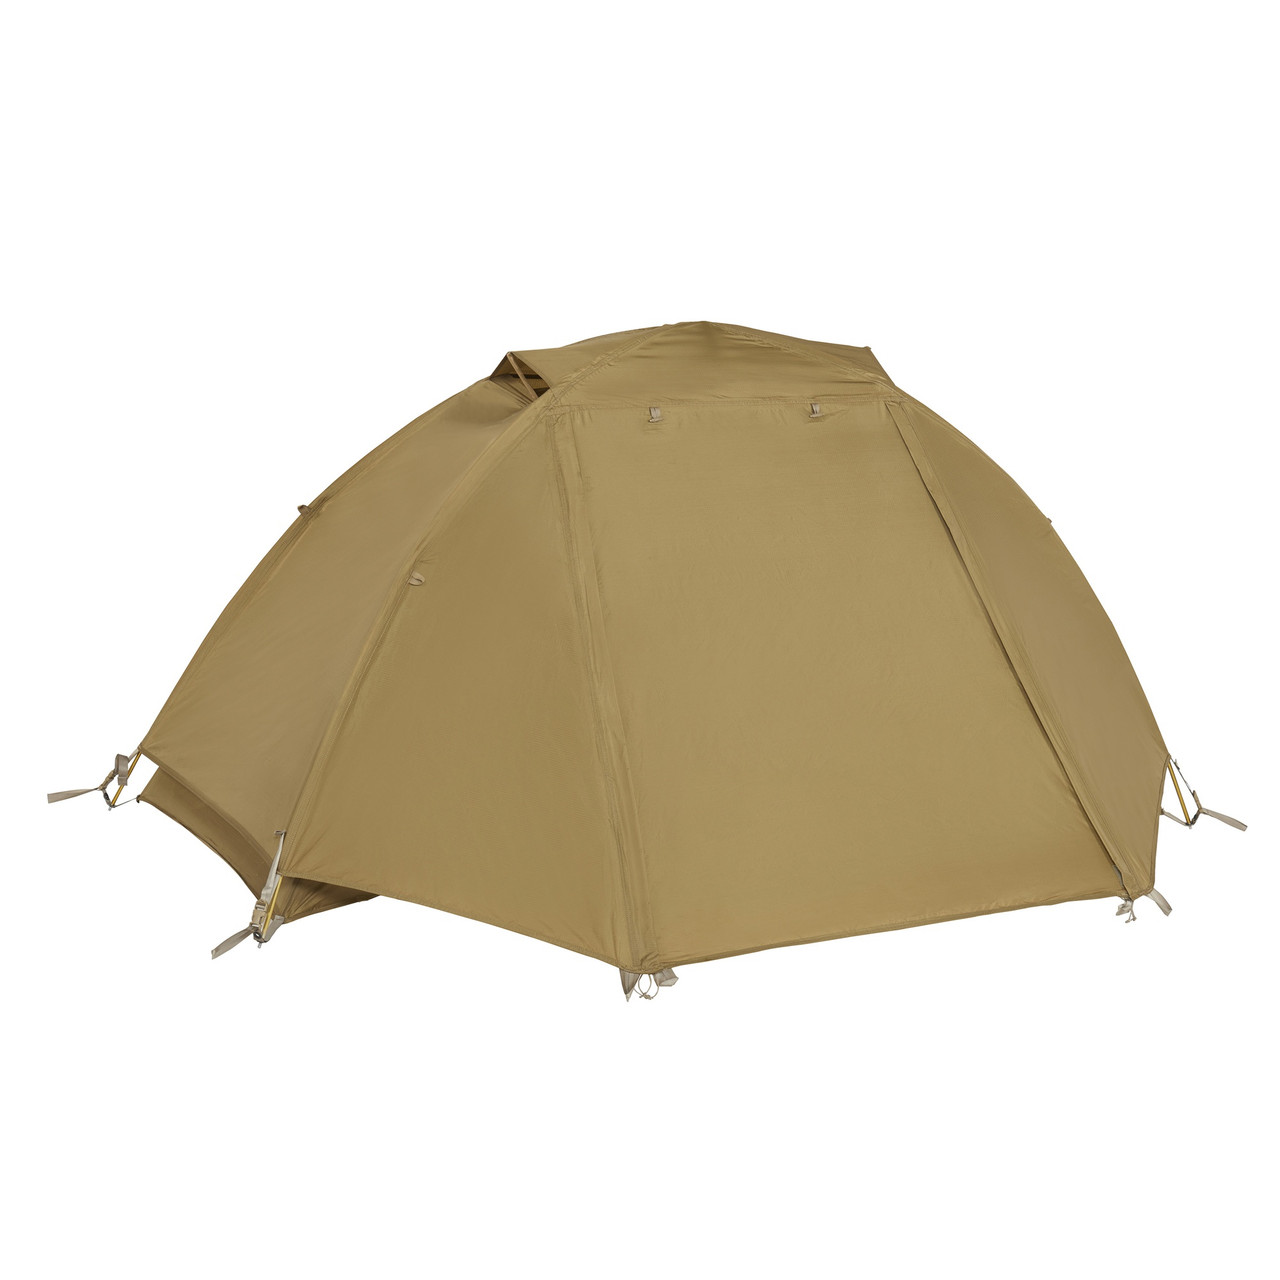 Kelty 2 Man Field Tent Import tent, brown, shown with rain fly attached and fully zipped